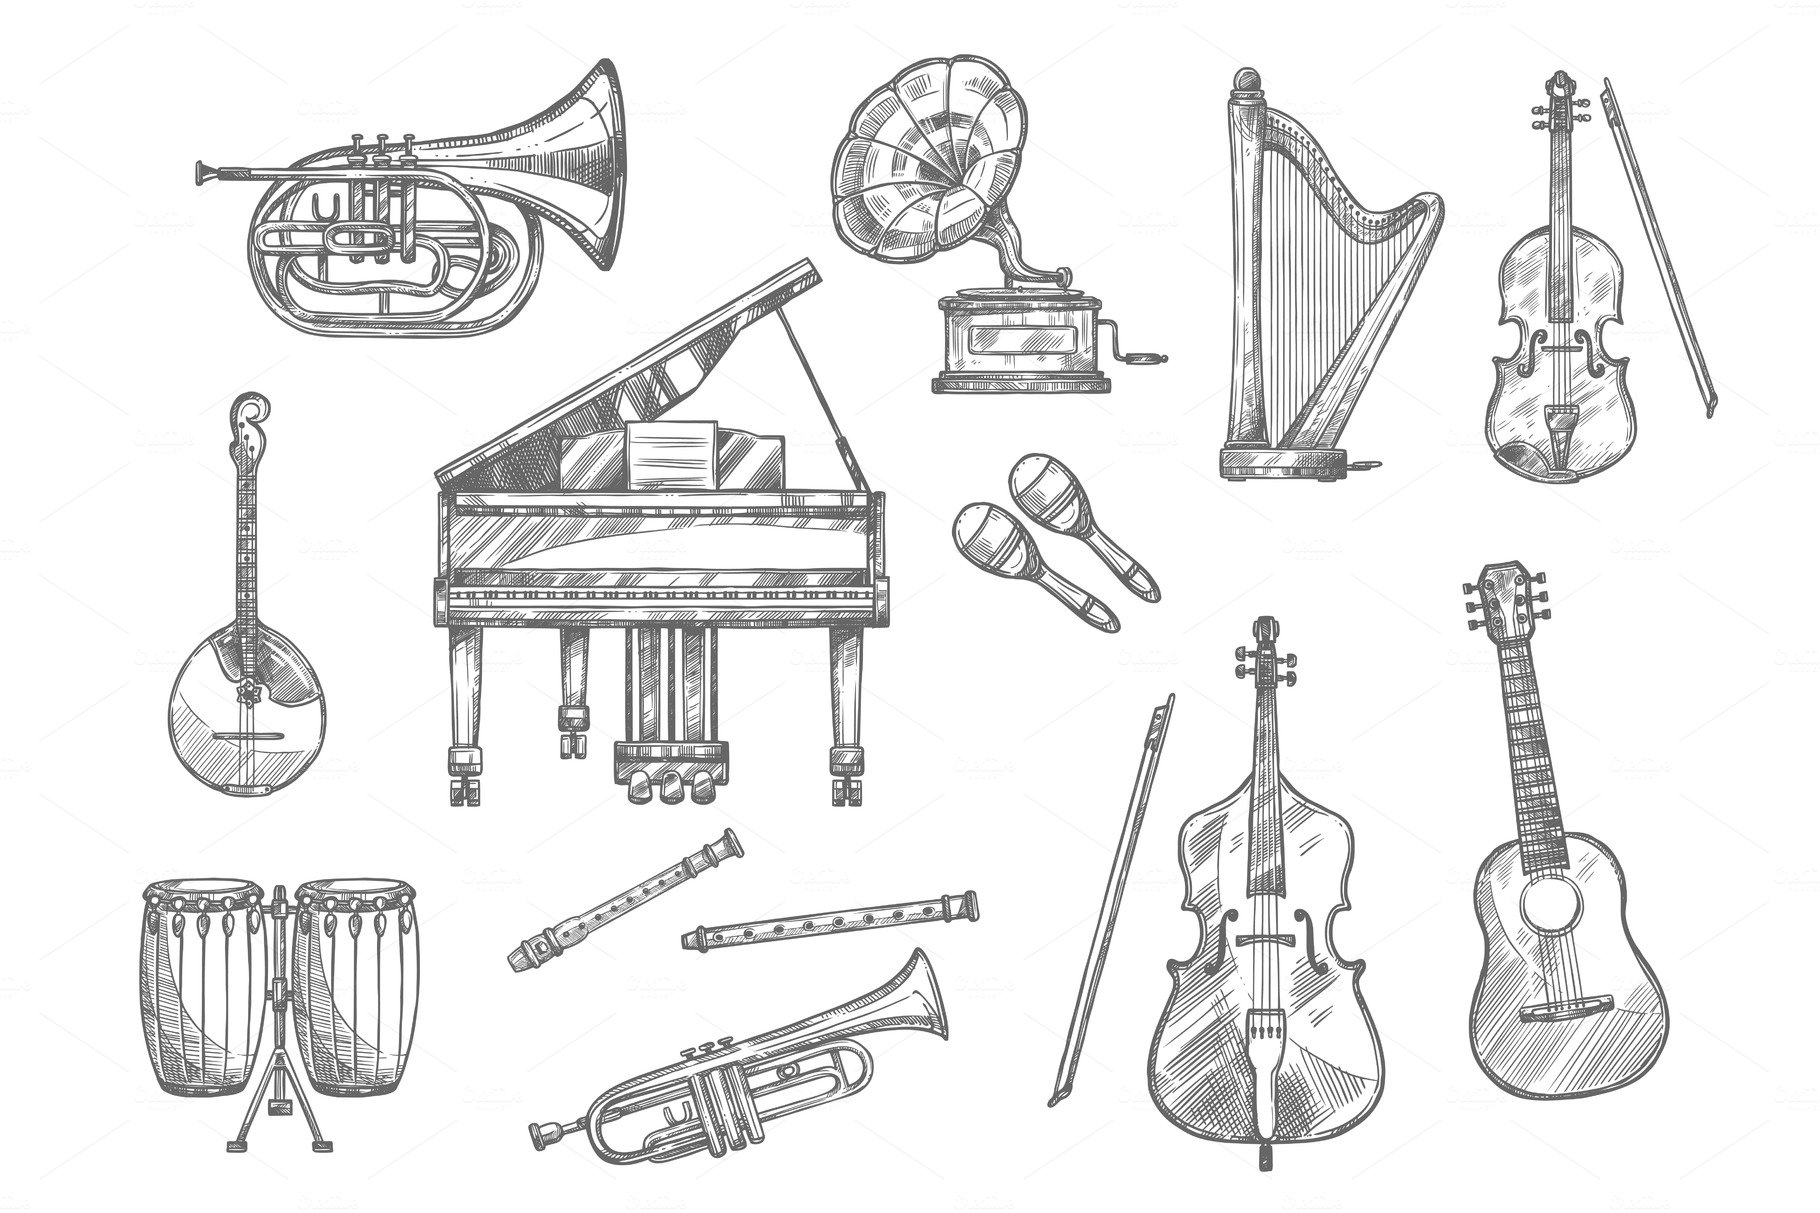 sketches of musical instruments hand drawn musical instruments in 2020 how to draw hands sketches of musical instruments